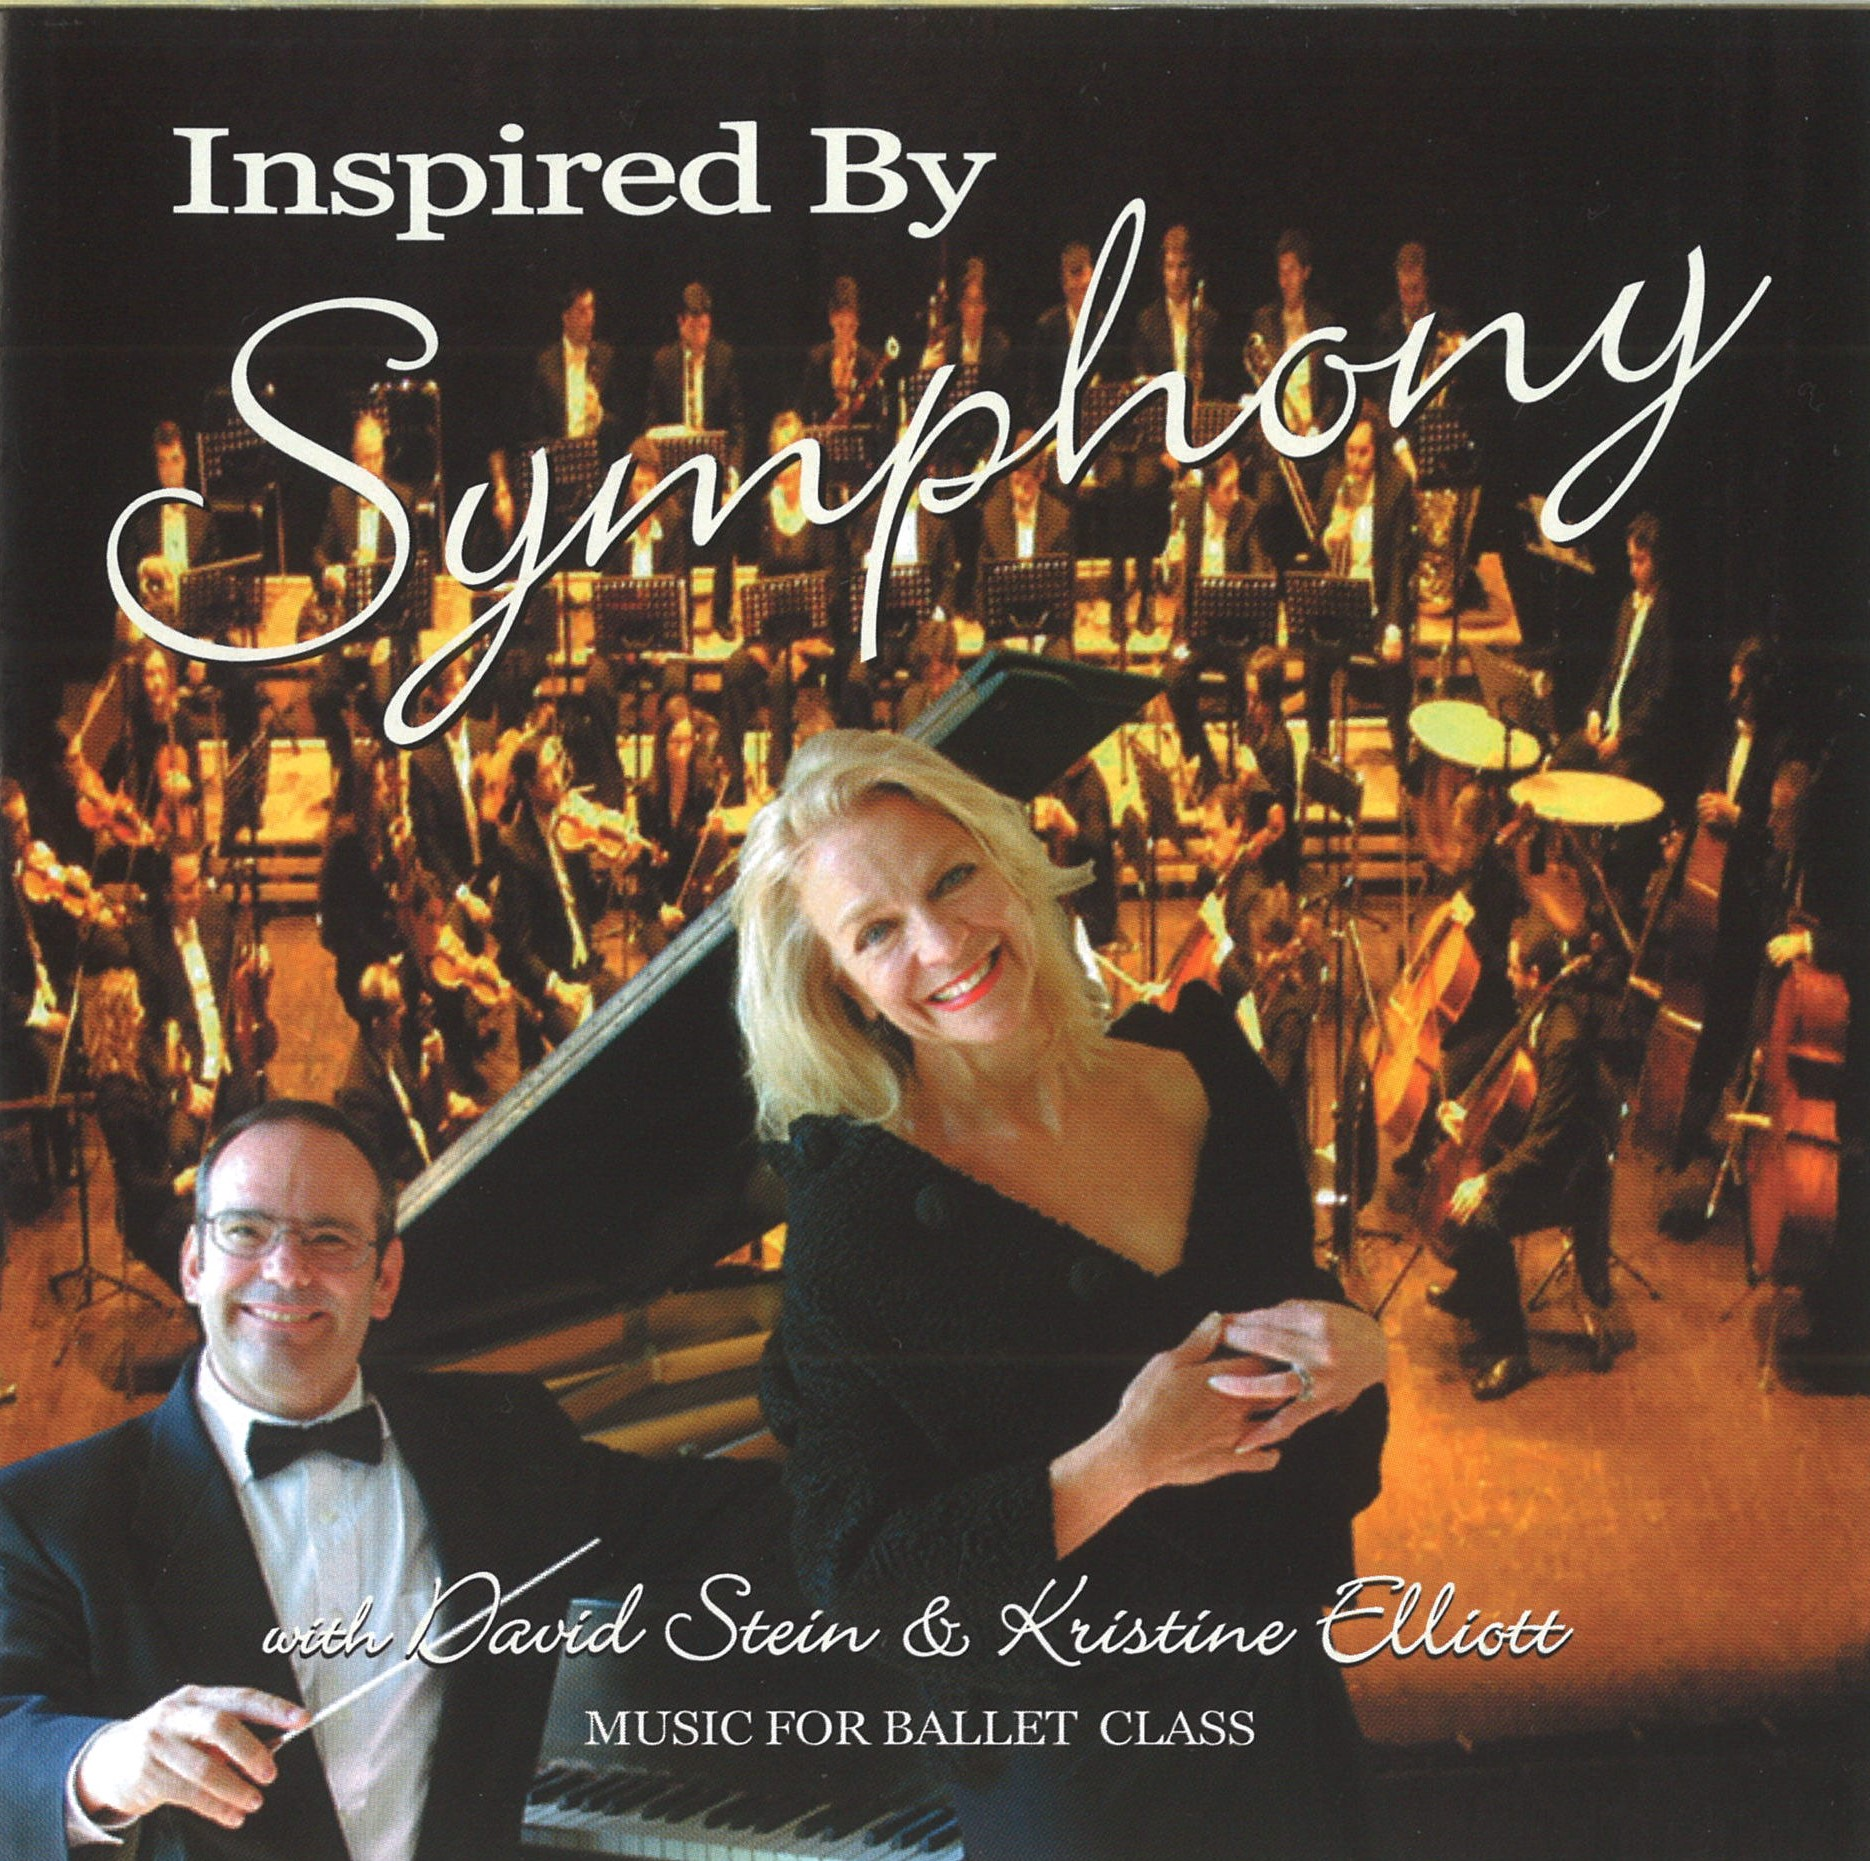 CD Inspired By Symphony (IB04C)